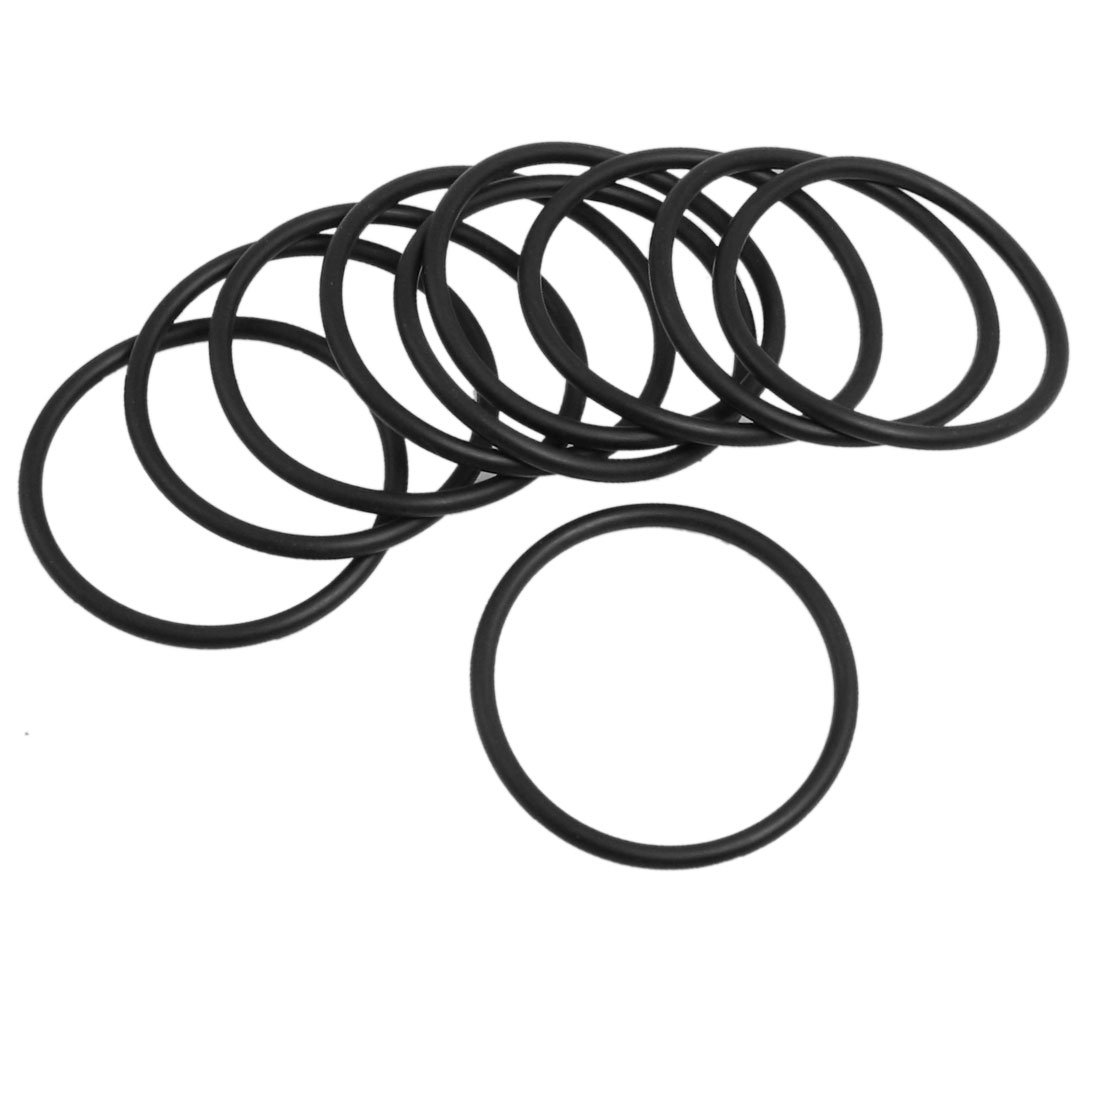 10 Pcs 54mm x 3.1mm Black Silicone O Rings Oil Seals Gaskets